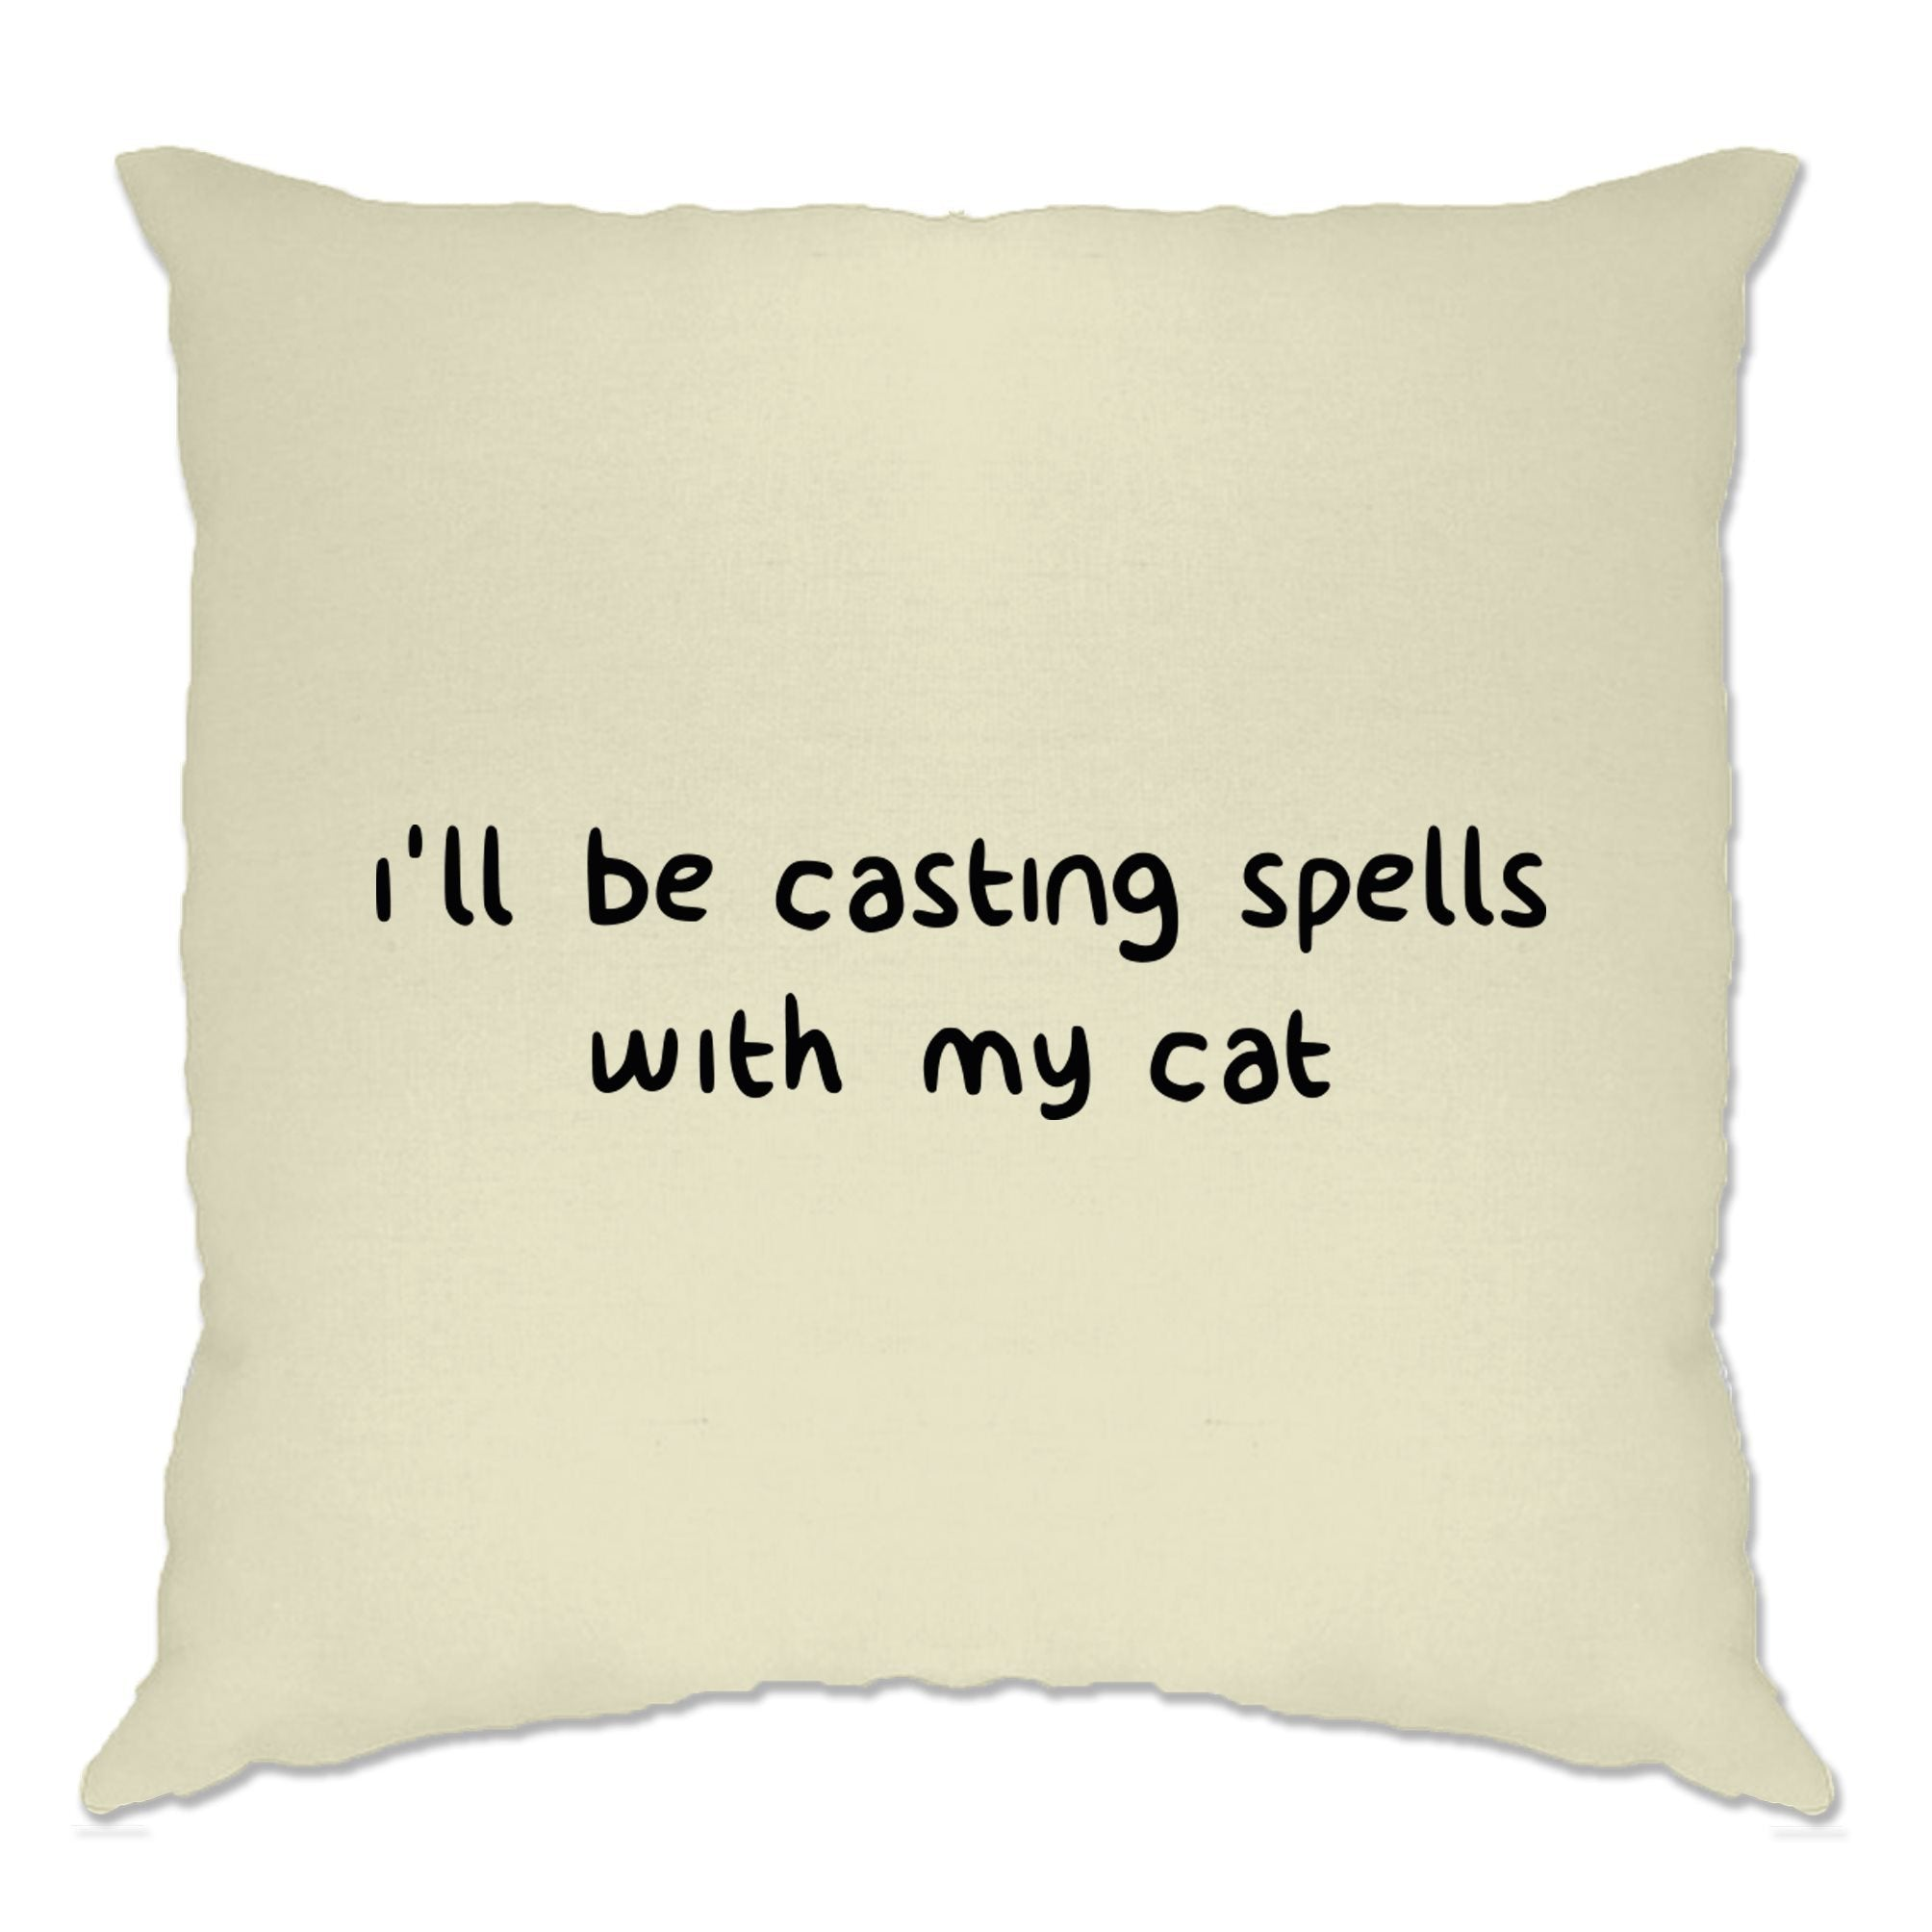 Halloween Cushion Cover I'll Be Casting Spells With My Cat